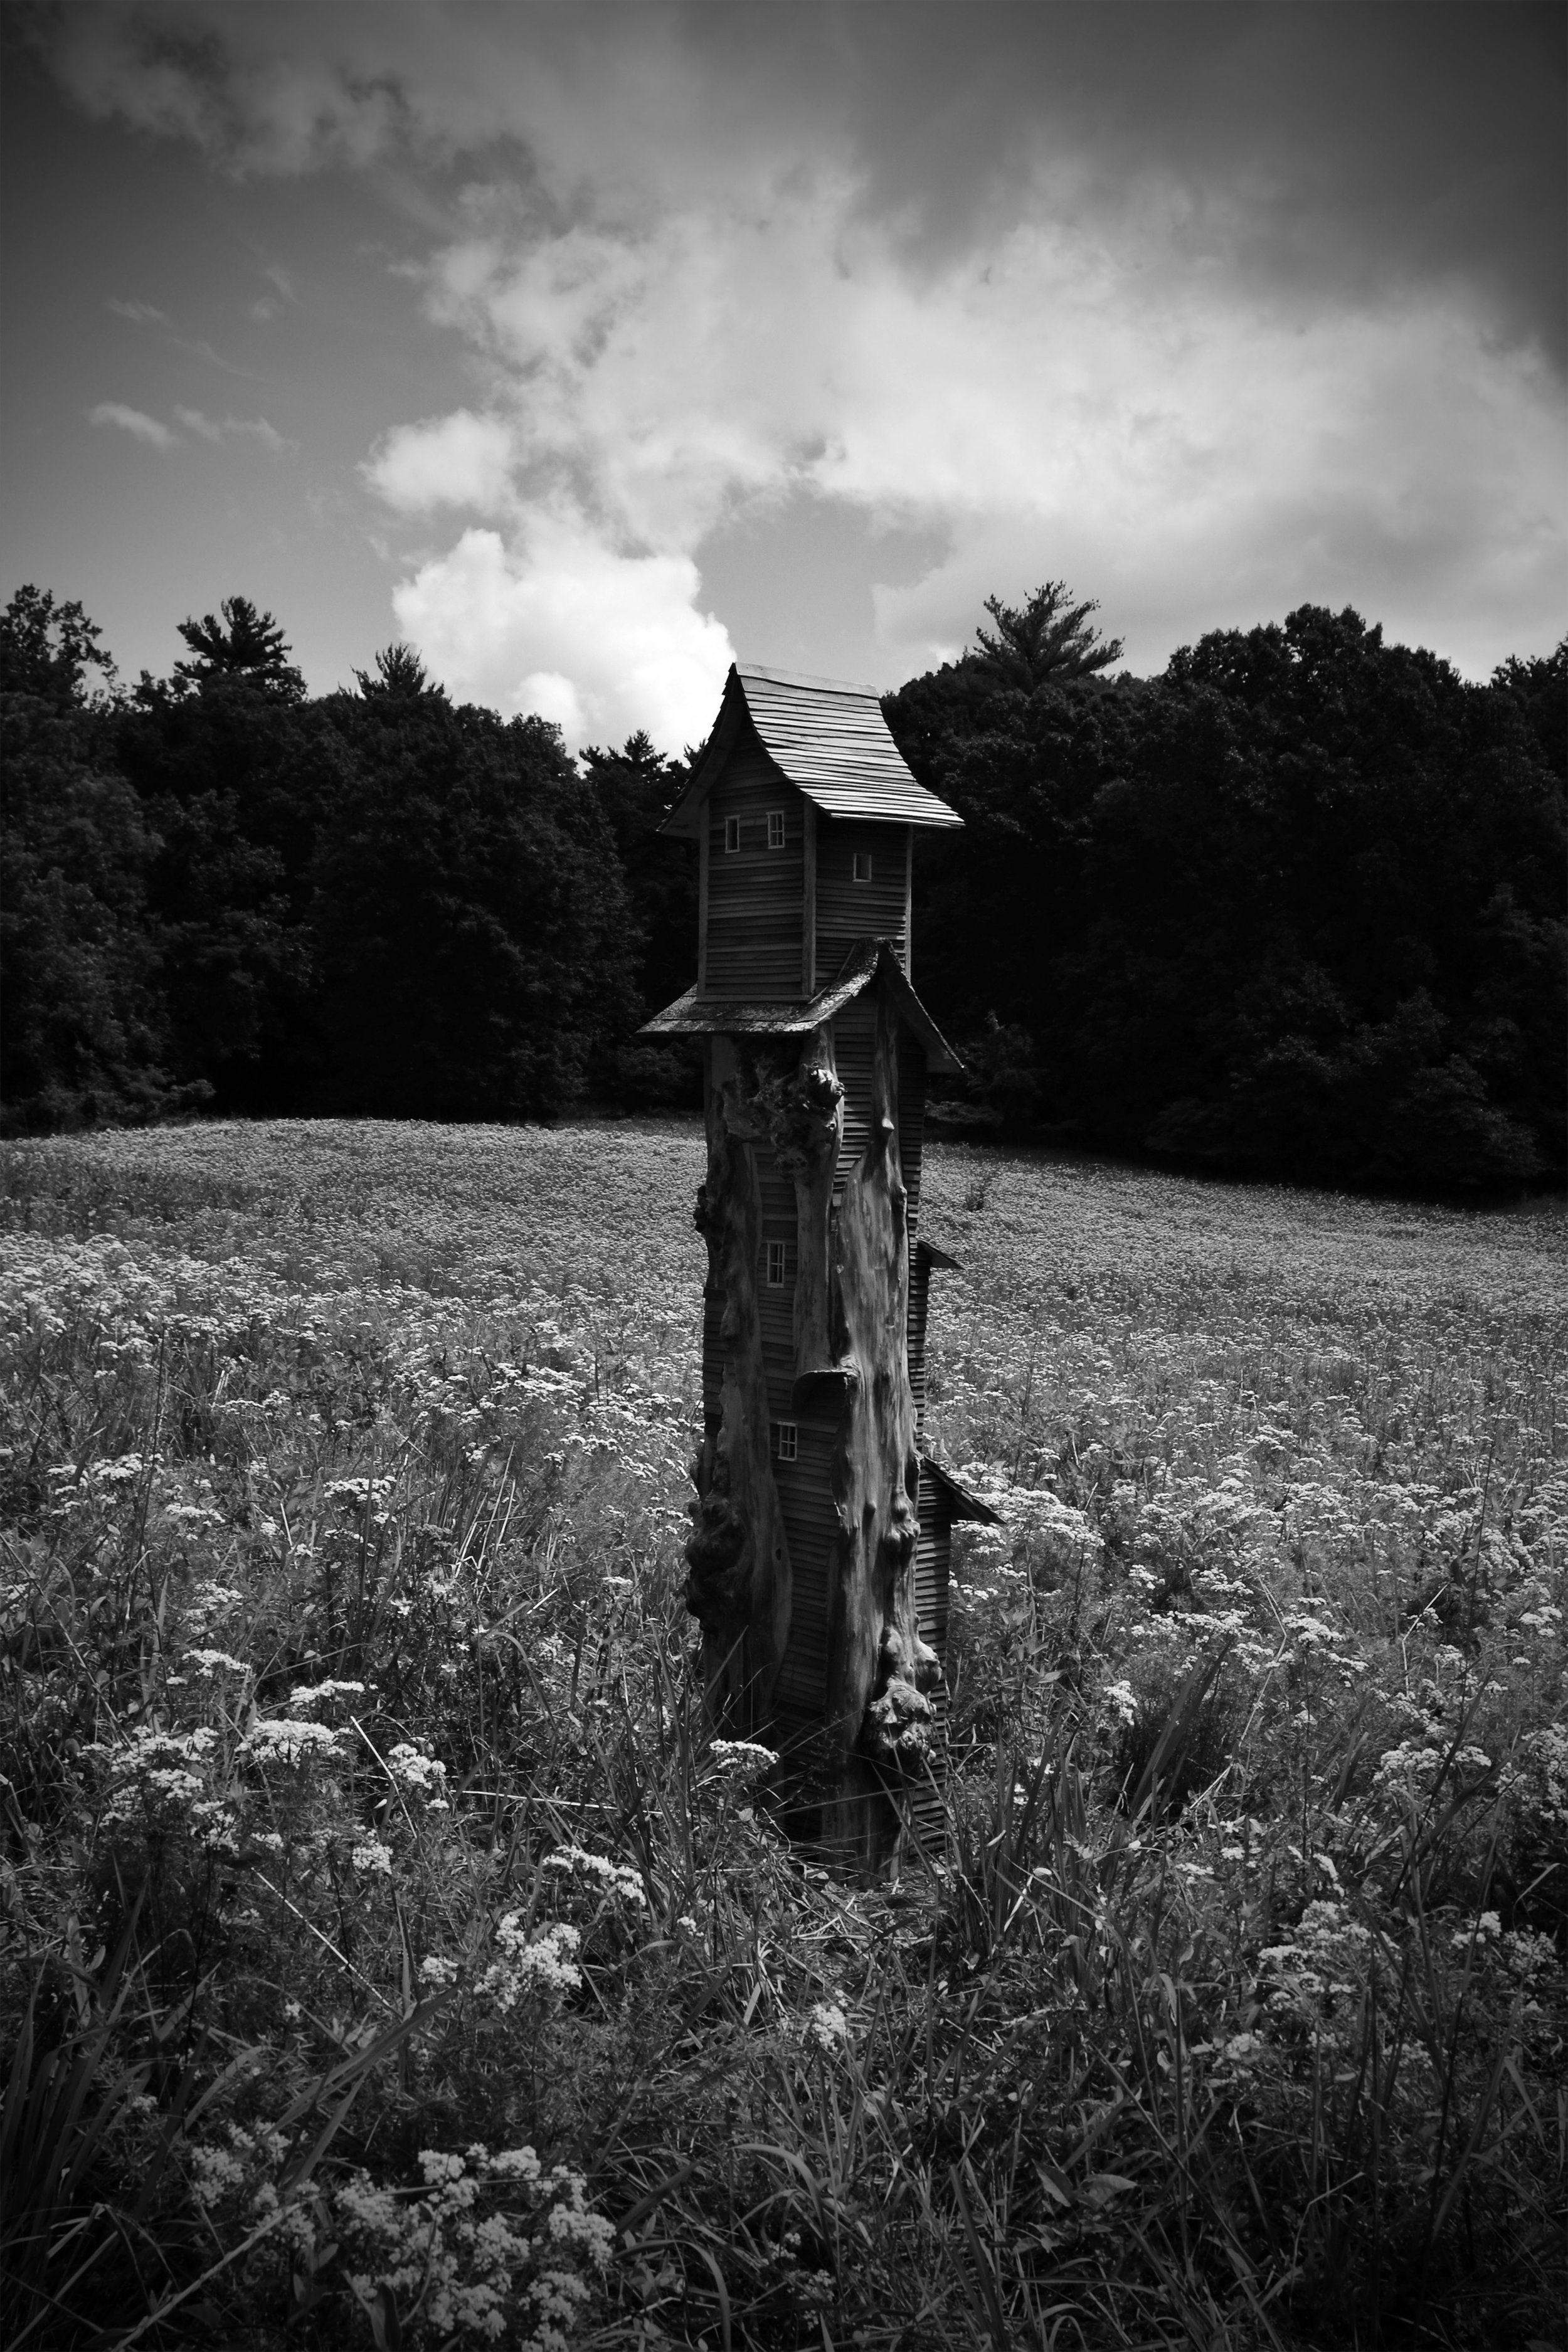 Slab Tower, Photograph/Sculpture, Robert Hite, 2012